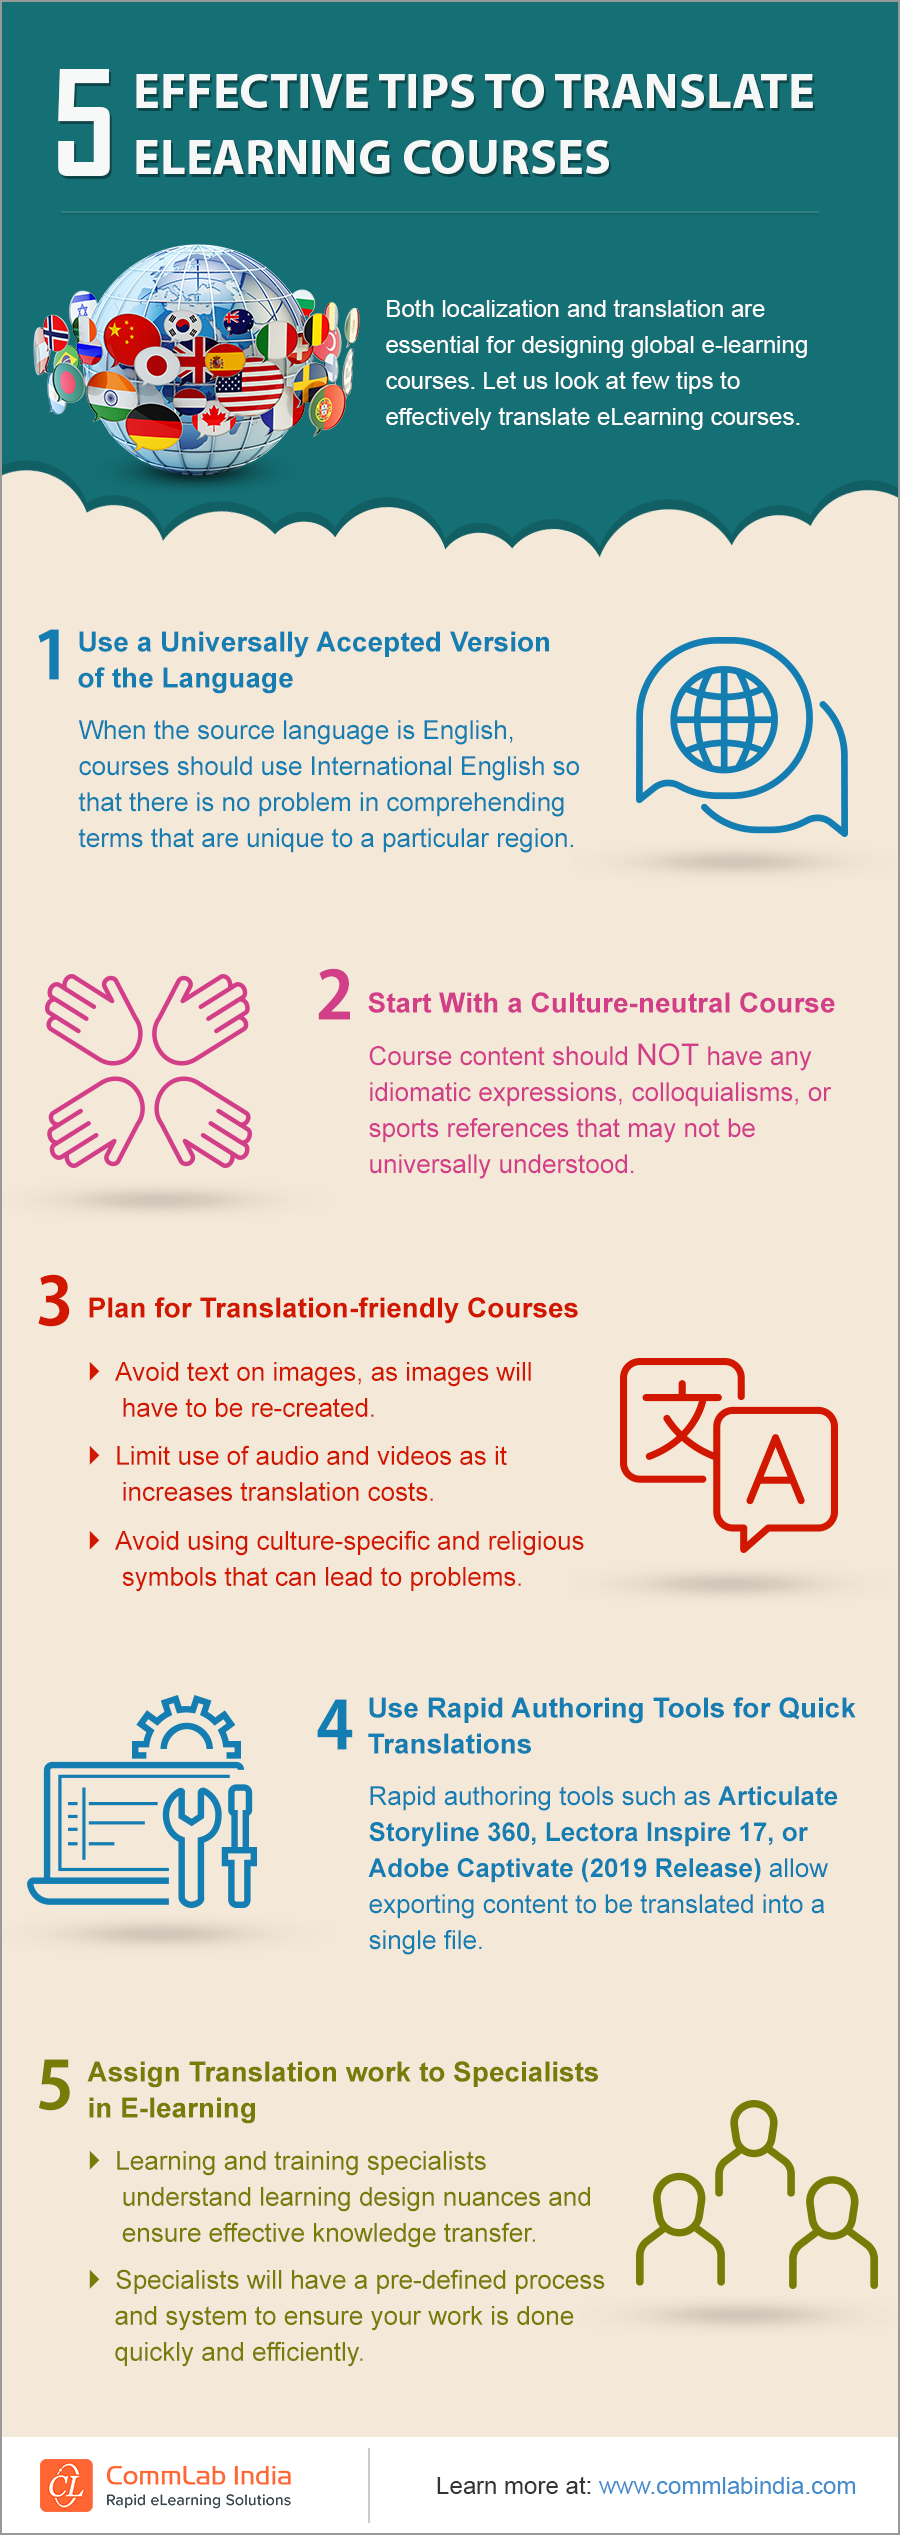 5 Effective Tips to Translate eLearning Courses [Infographic]